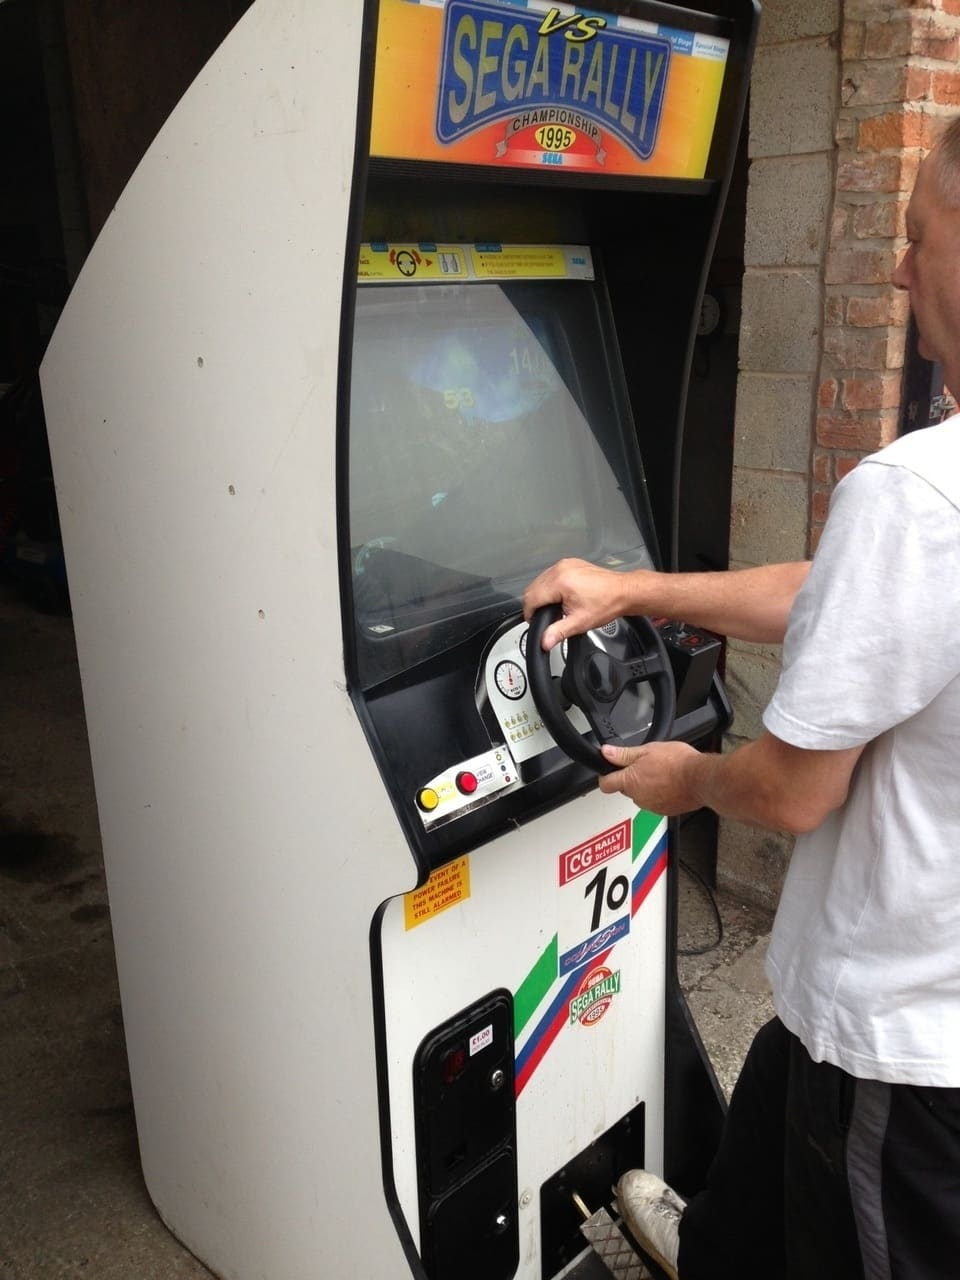 Sega Rally 1 Upright Arcade Machine